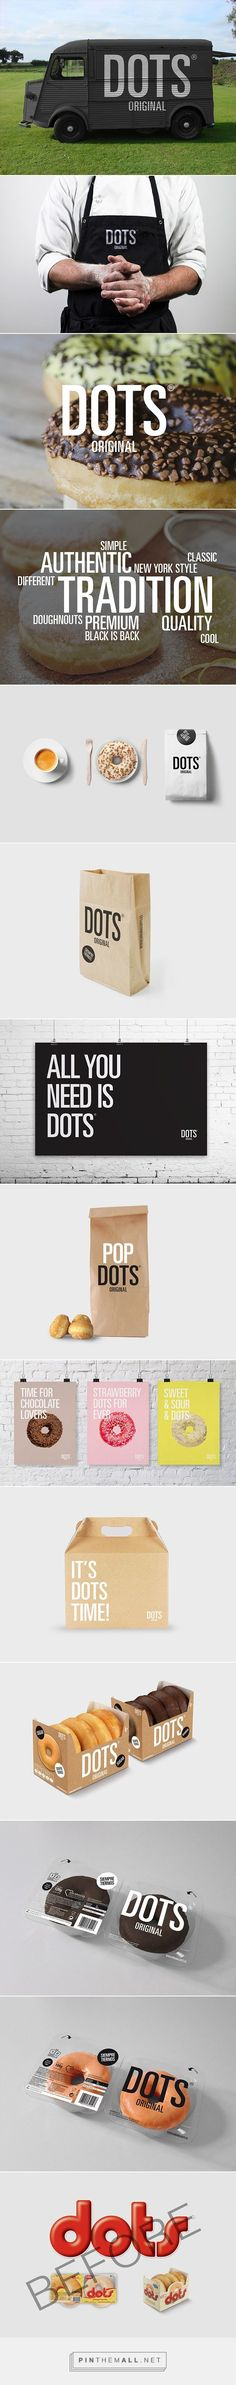 Dots doughnuts rebrand and new #packaging design.